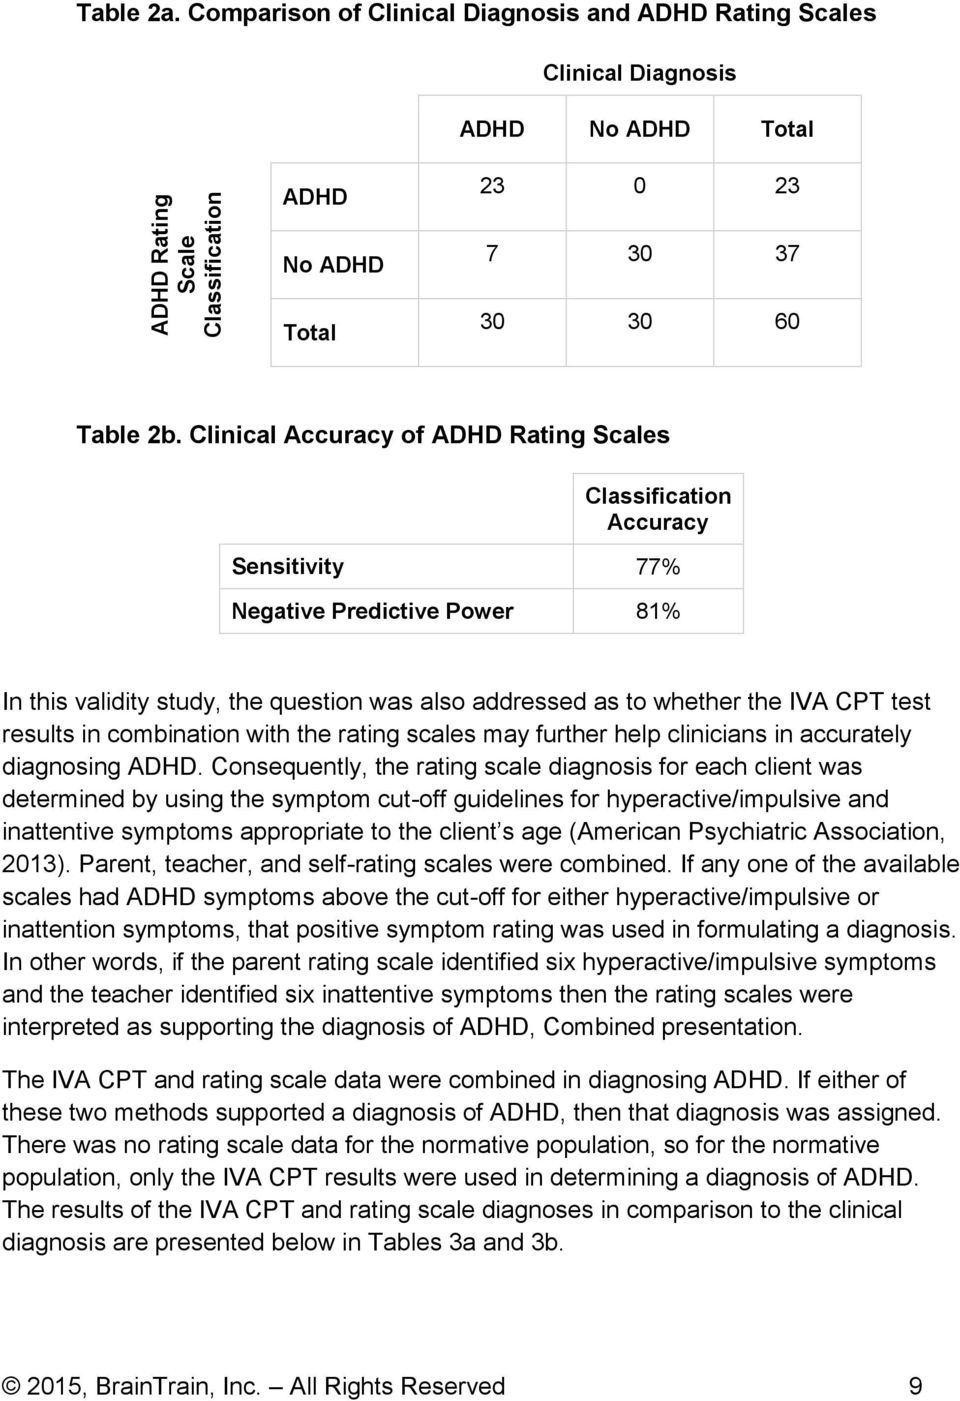 results in combination with the rating scales may further help clinicians in accurately diagnosing ADHD.